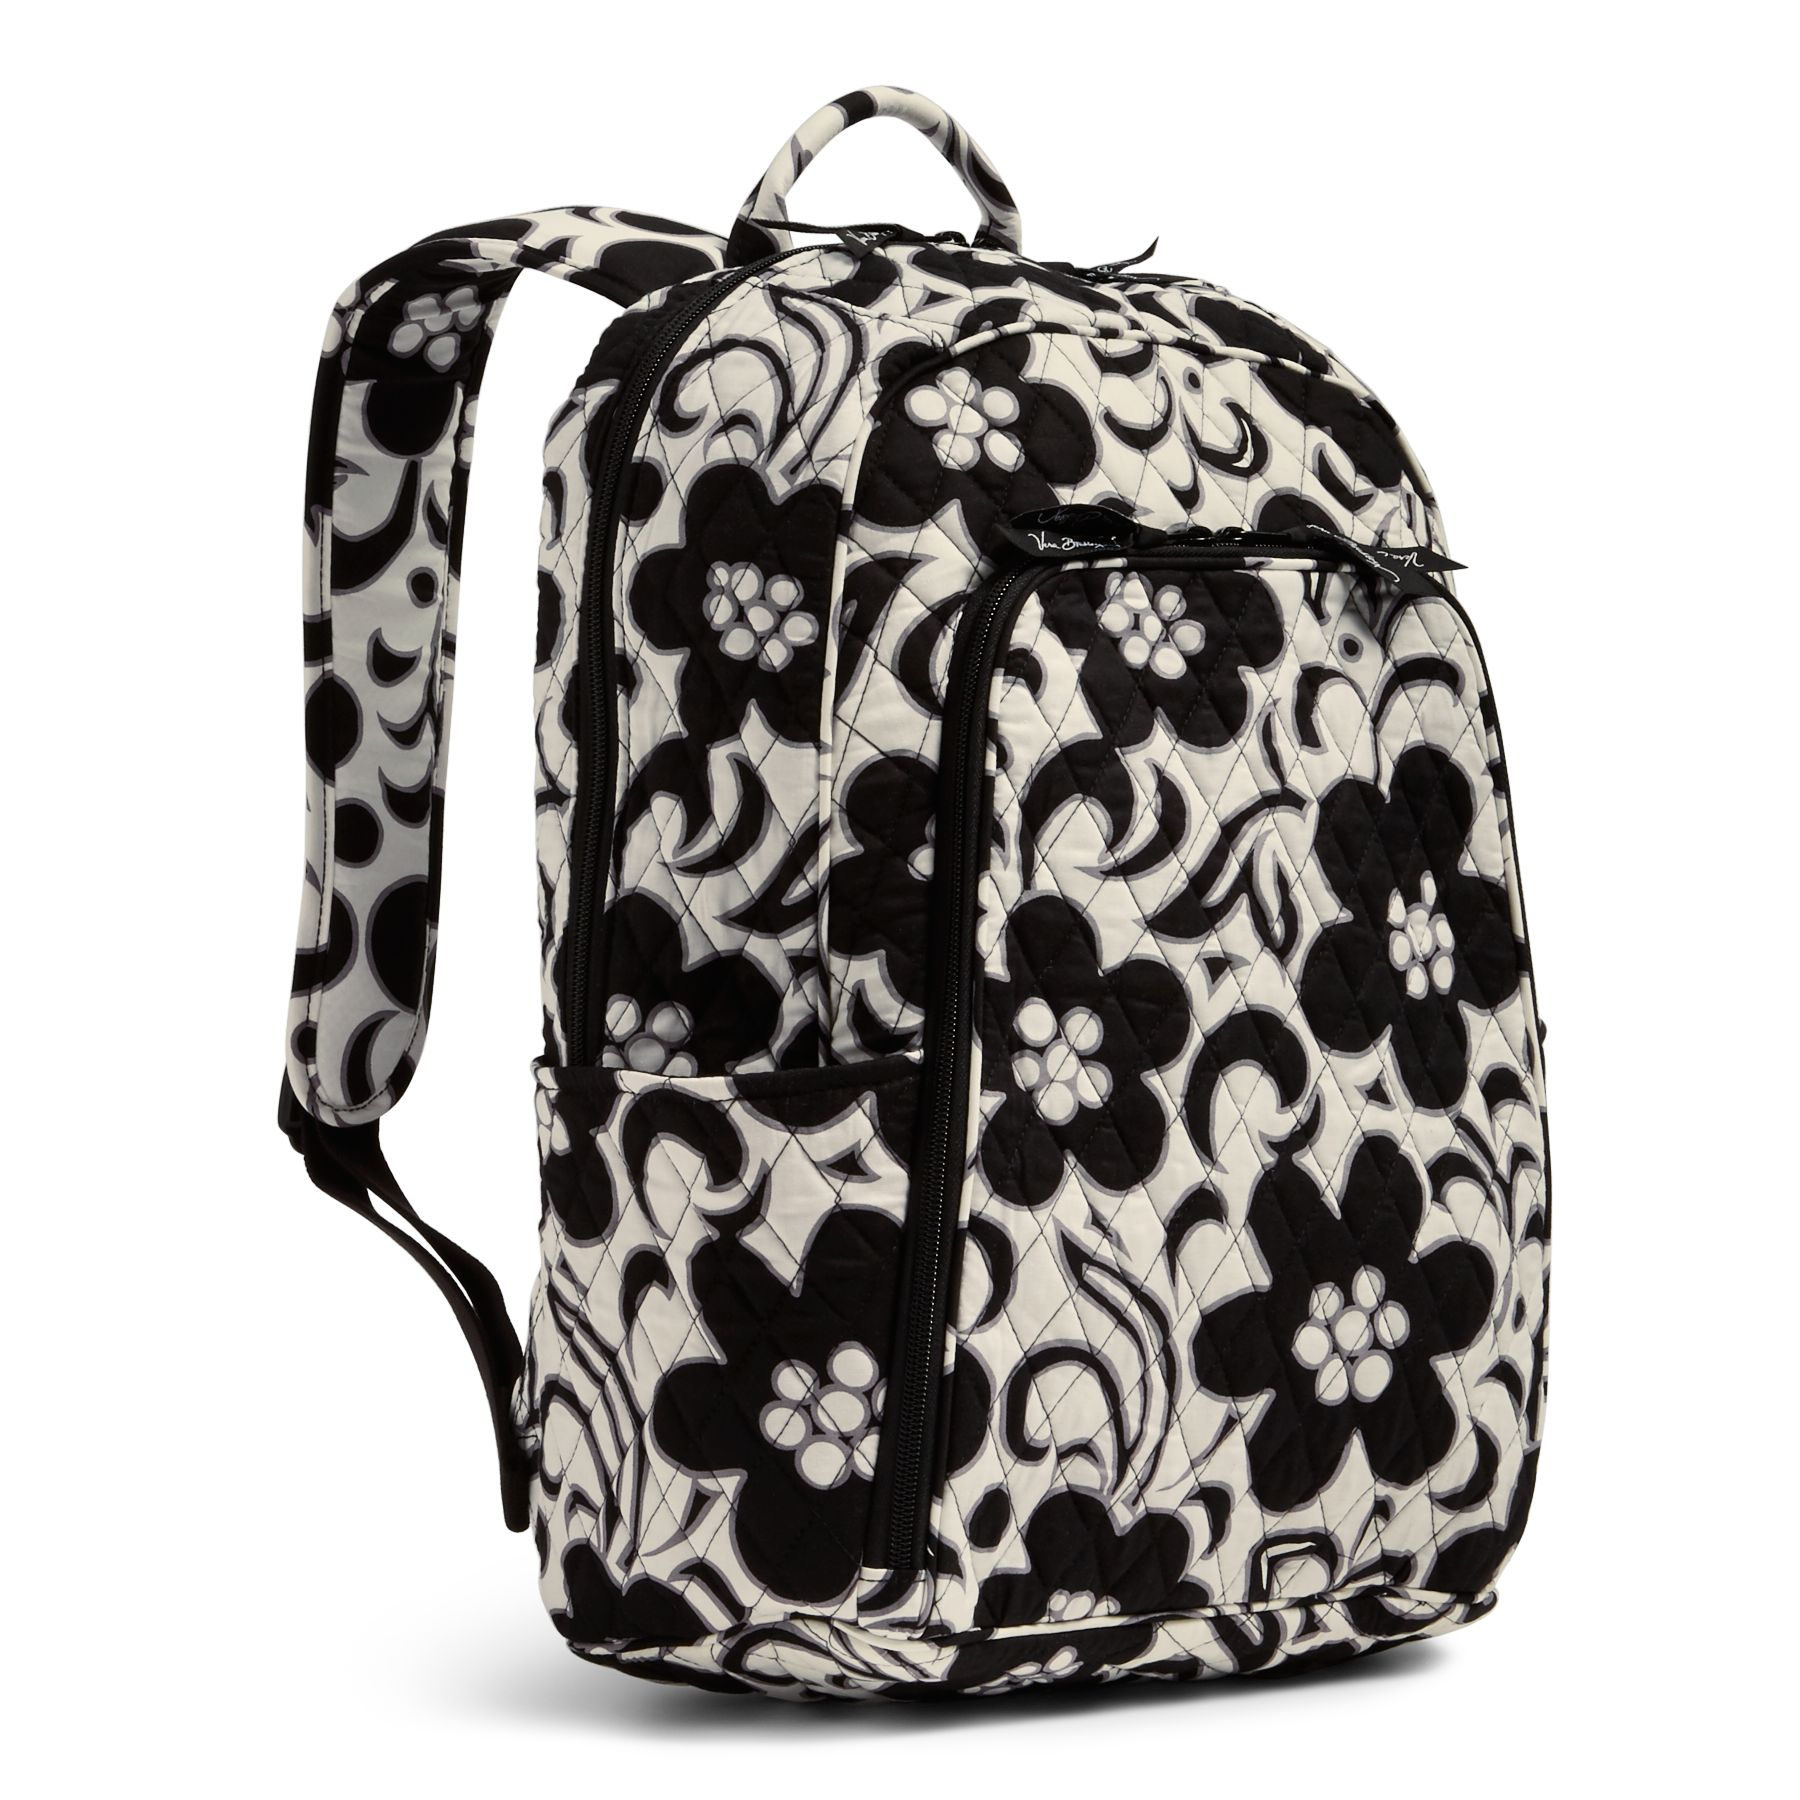 bbbdf50201fe Vera Bradley Backpack Purse Black- Fenix Toulouse Handball